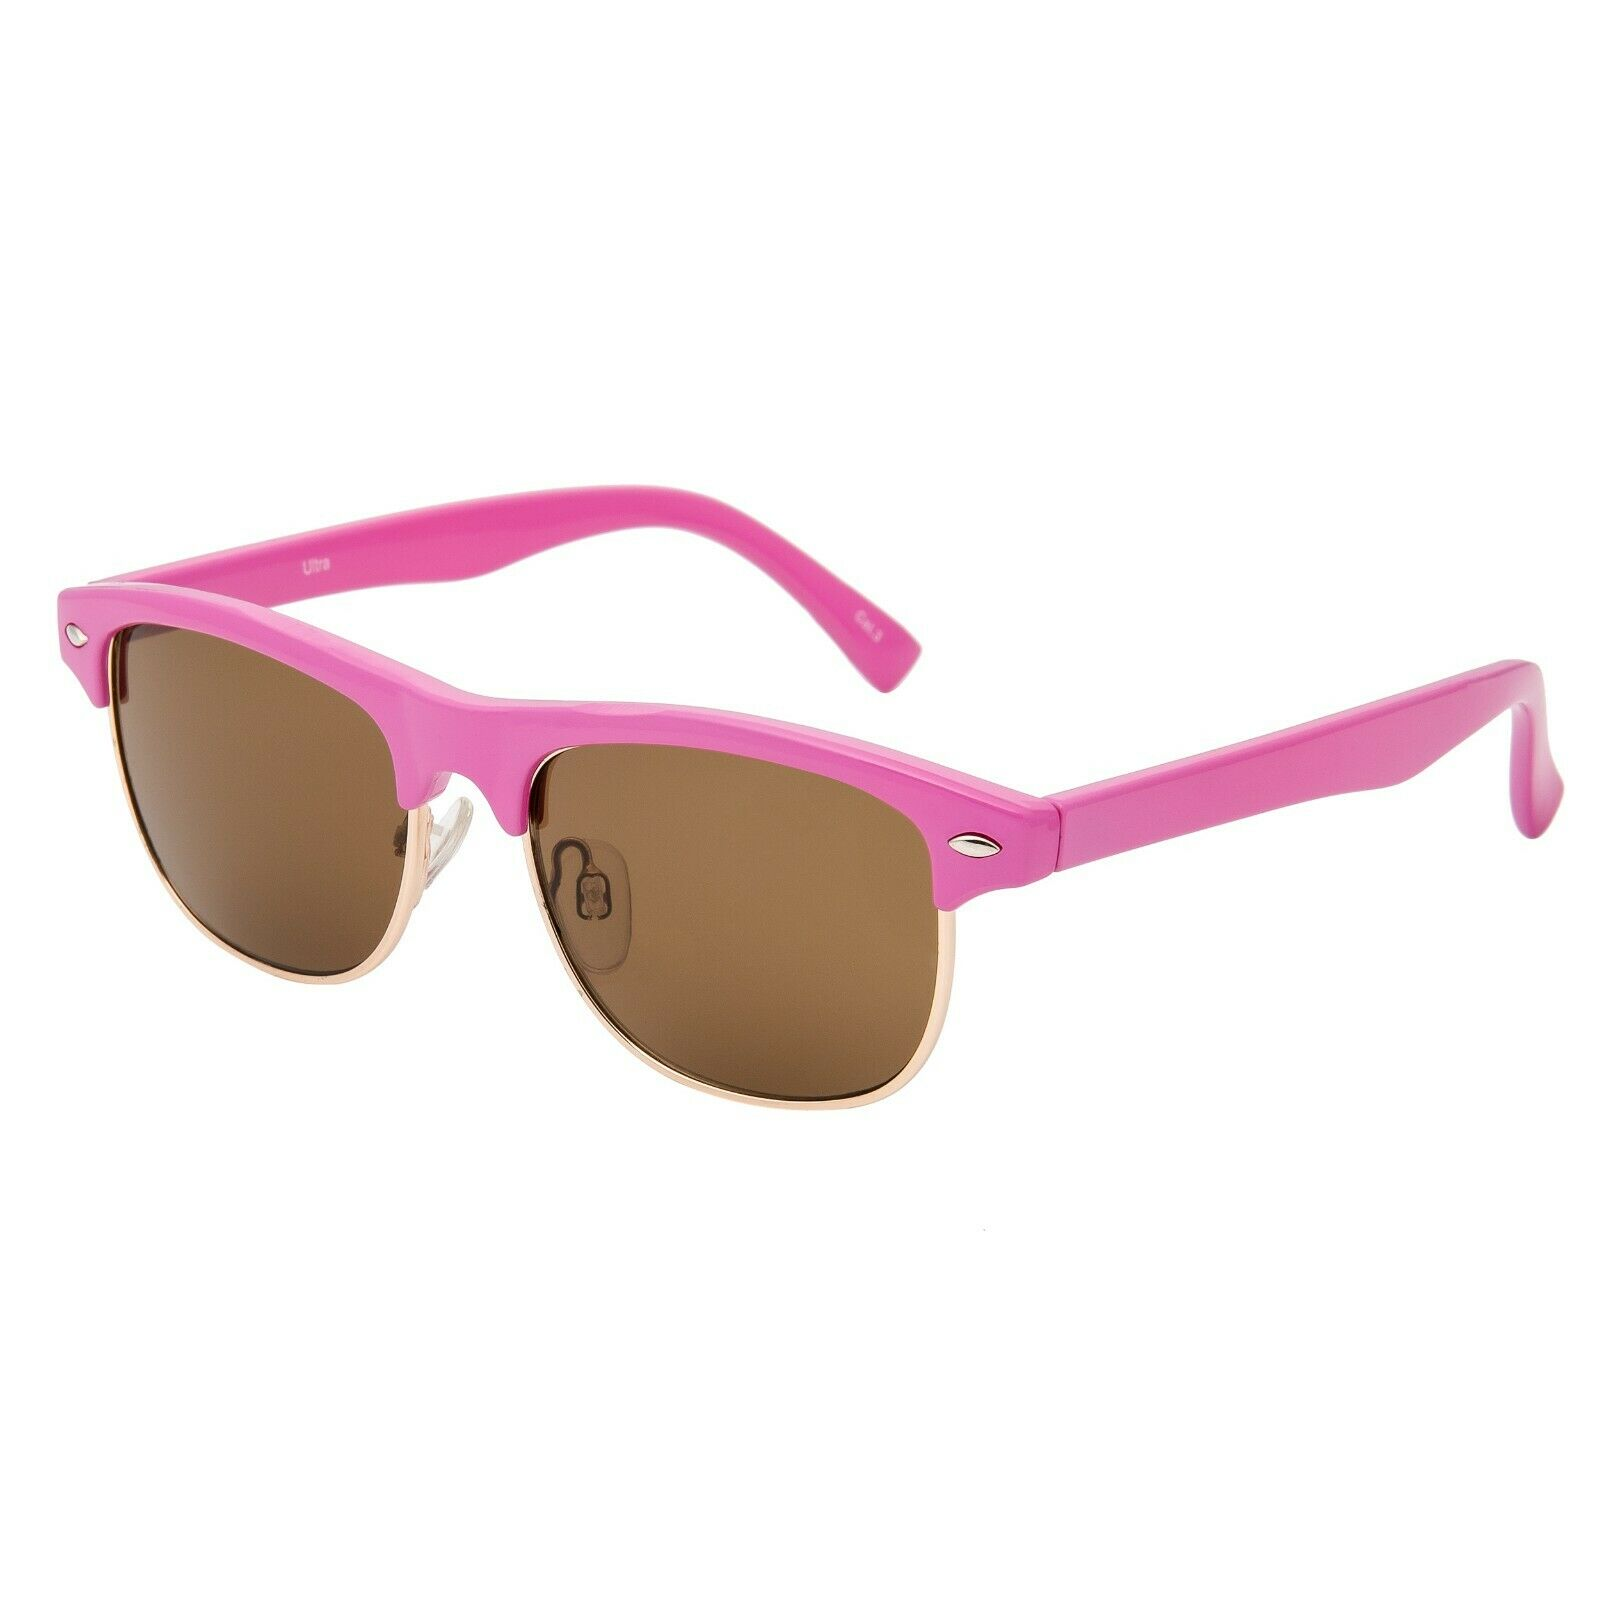 Halfbye Retro Vintage Oval Sunglasses for Boys Girls Kids Clout Goggles Plastic Frame Classic Eyewear Candy Color